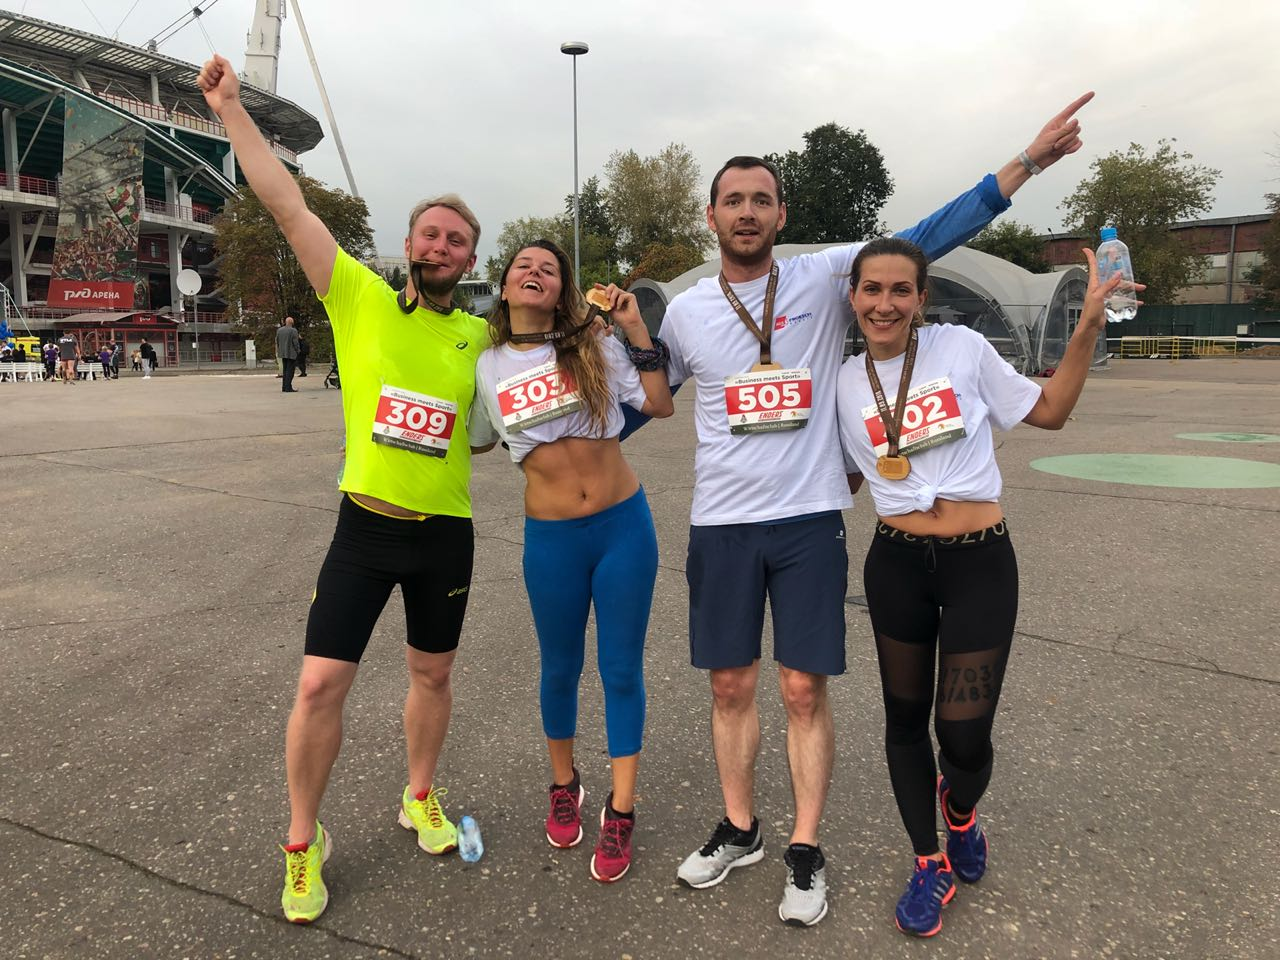 AGS Movers Russia team with their medals at the Wirtschaftsclub Run.